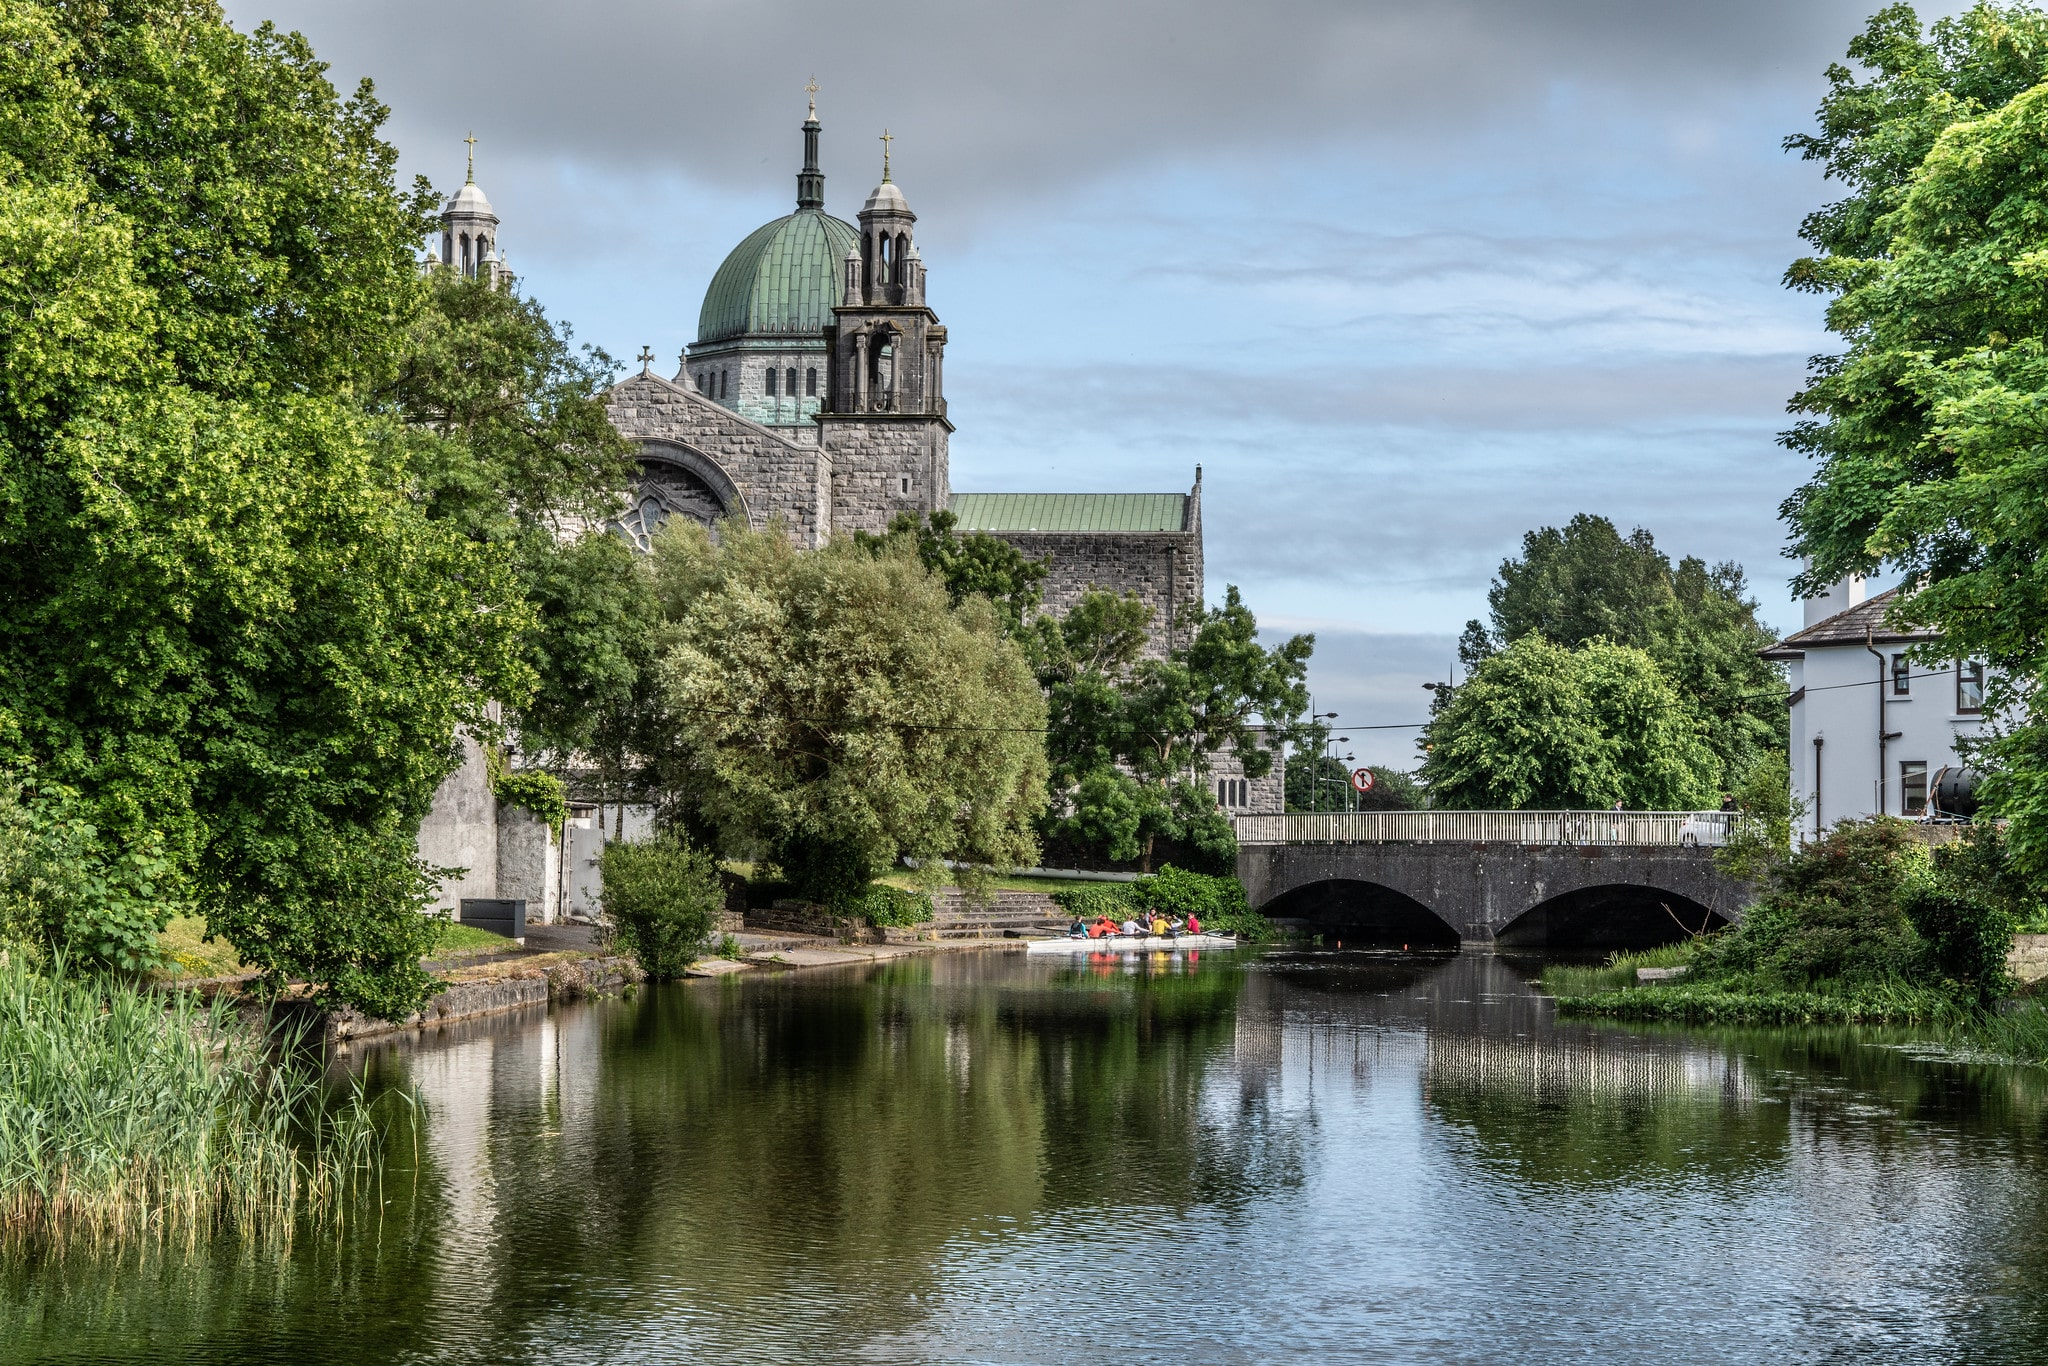 Checking out the historic St. Nicholas' Collegiate Church is an awesome thing to do in Galway Ireland